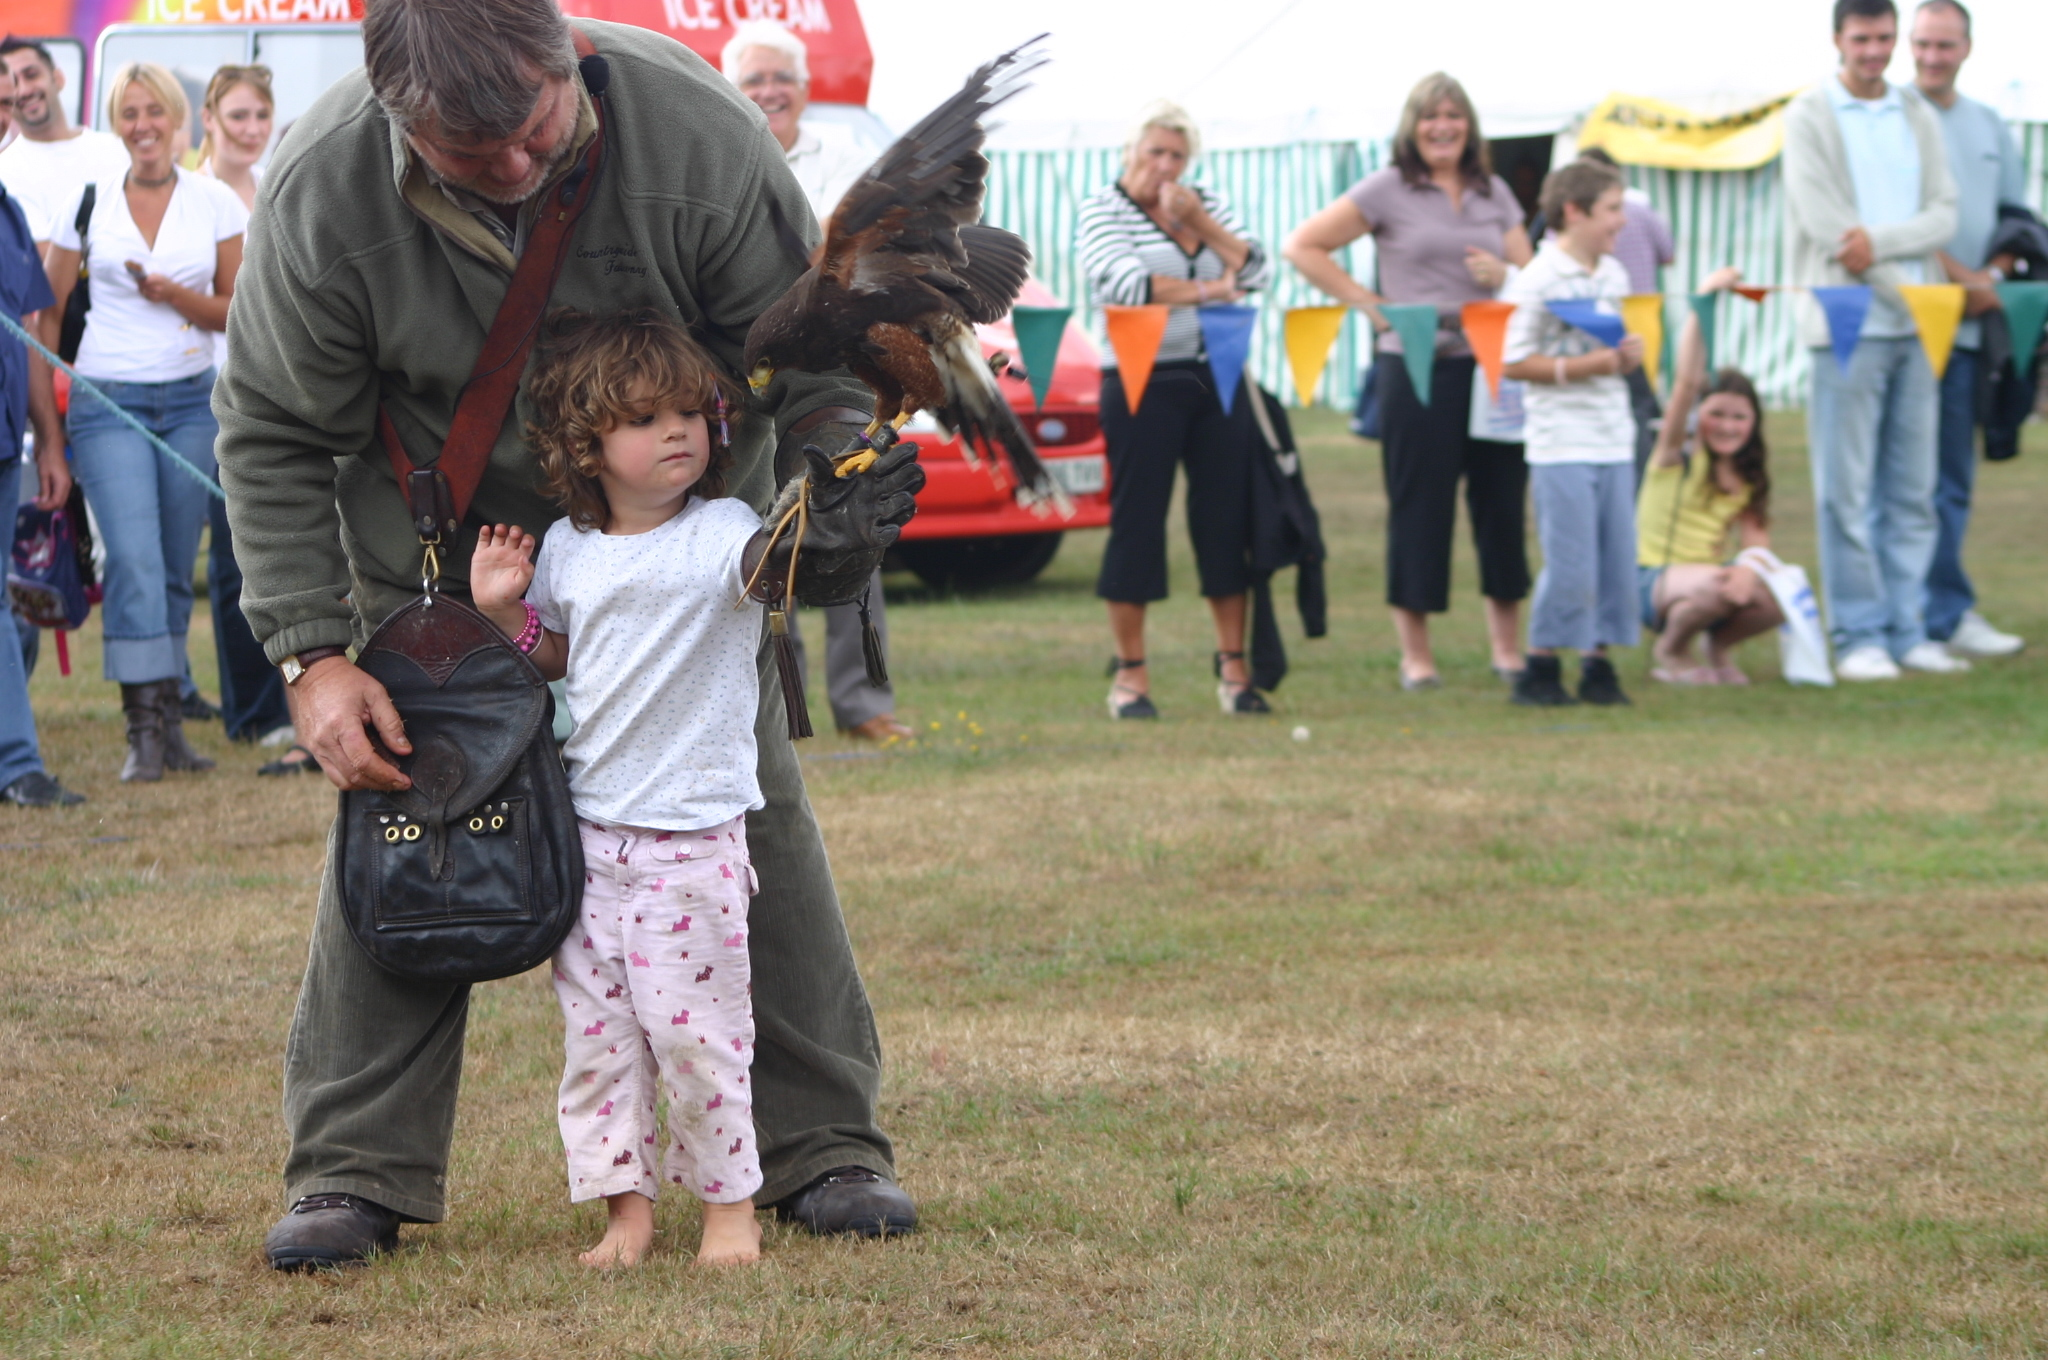 Thousands expected to flock to Eastnor Castle Country Show